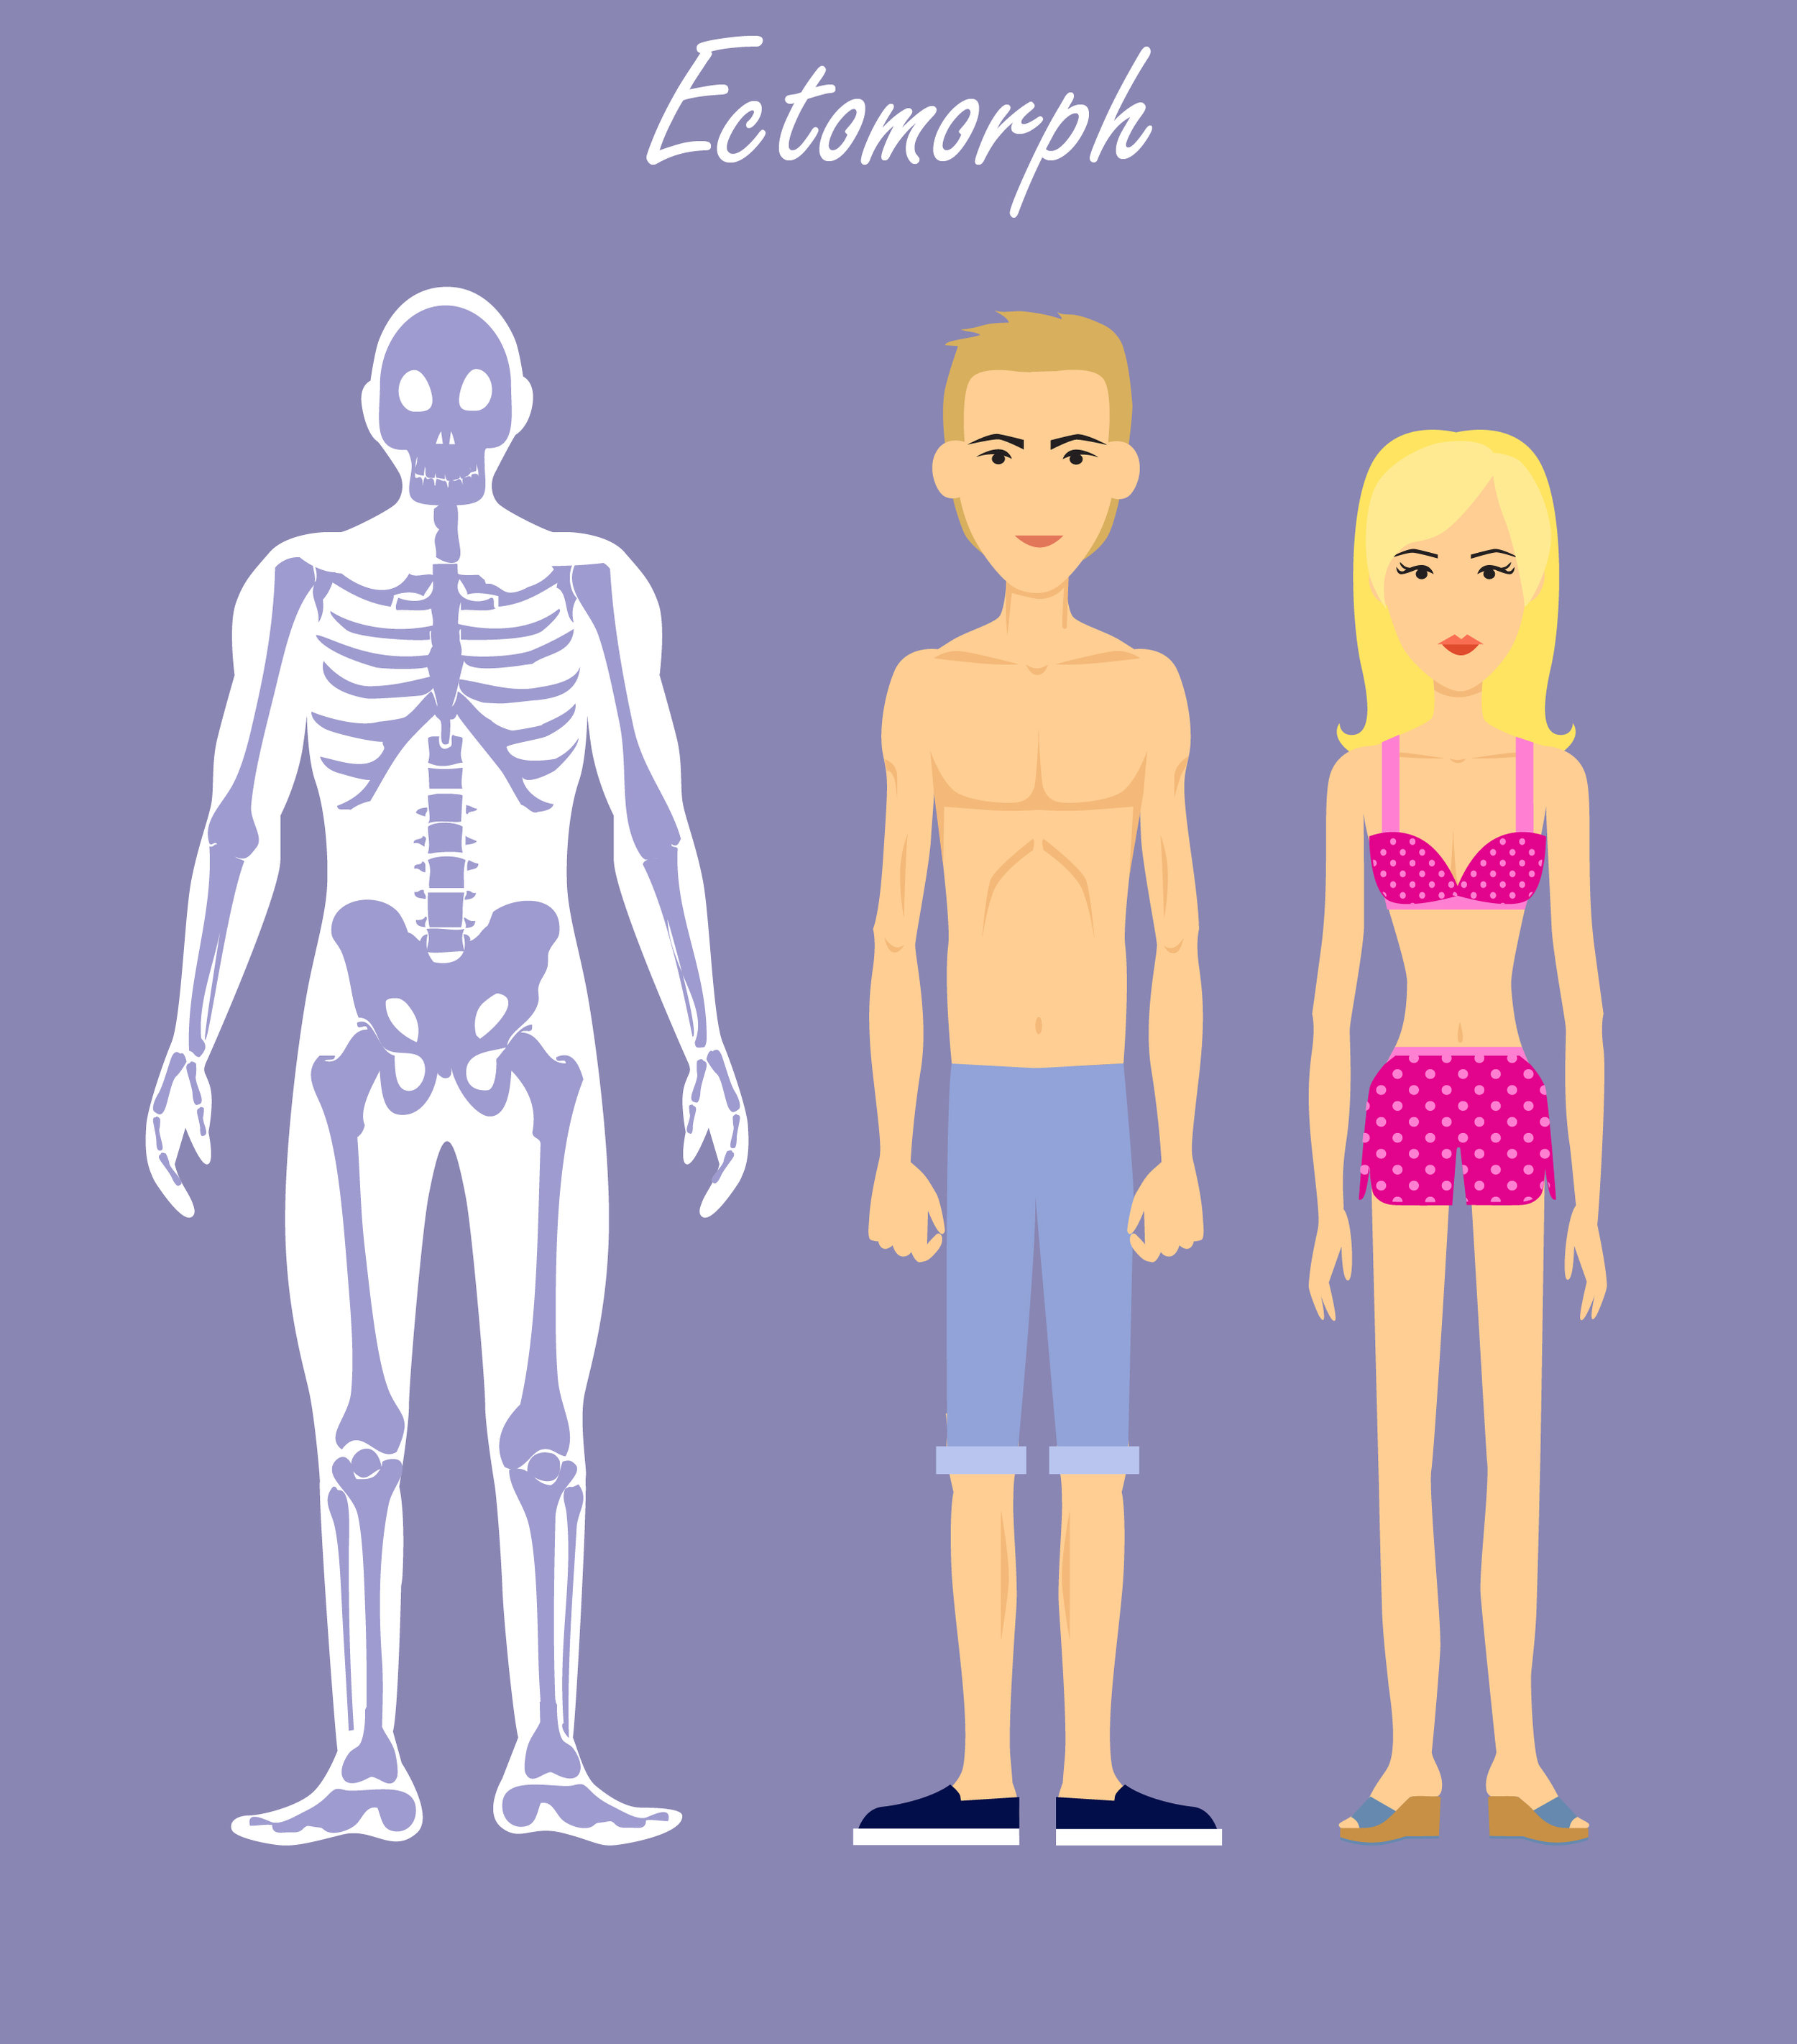 Ectomorph, Endomorph and Mesomorph: How to Eat and Exercise